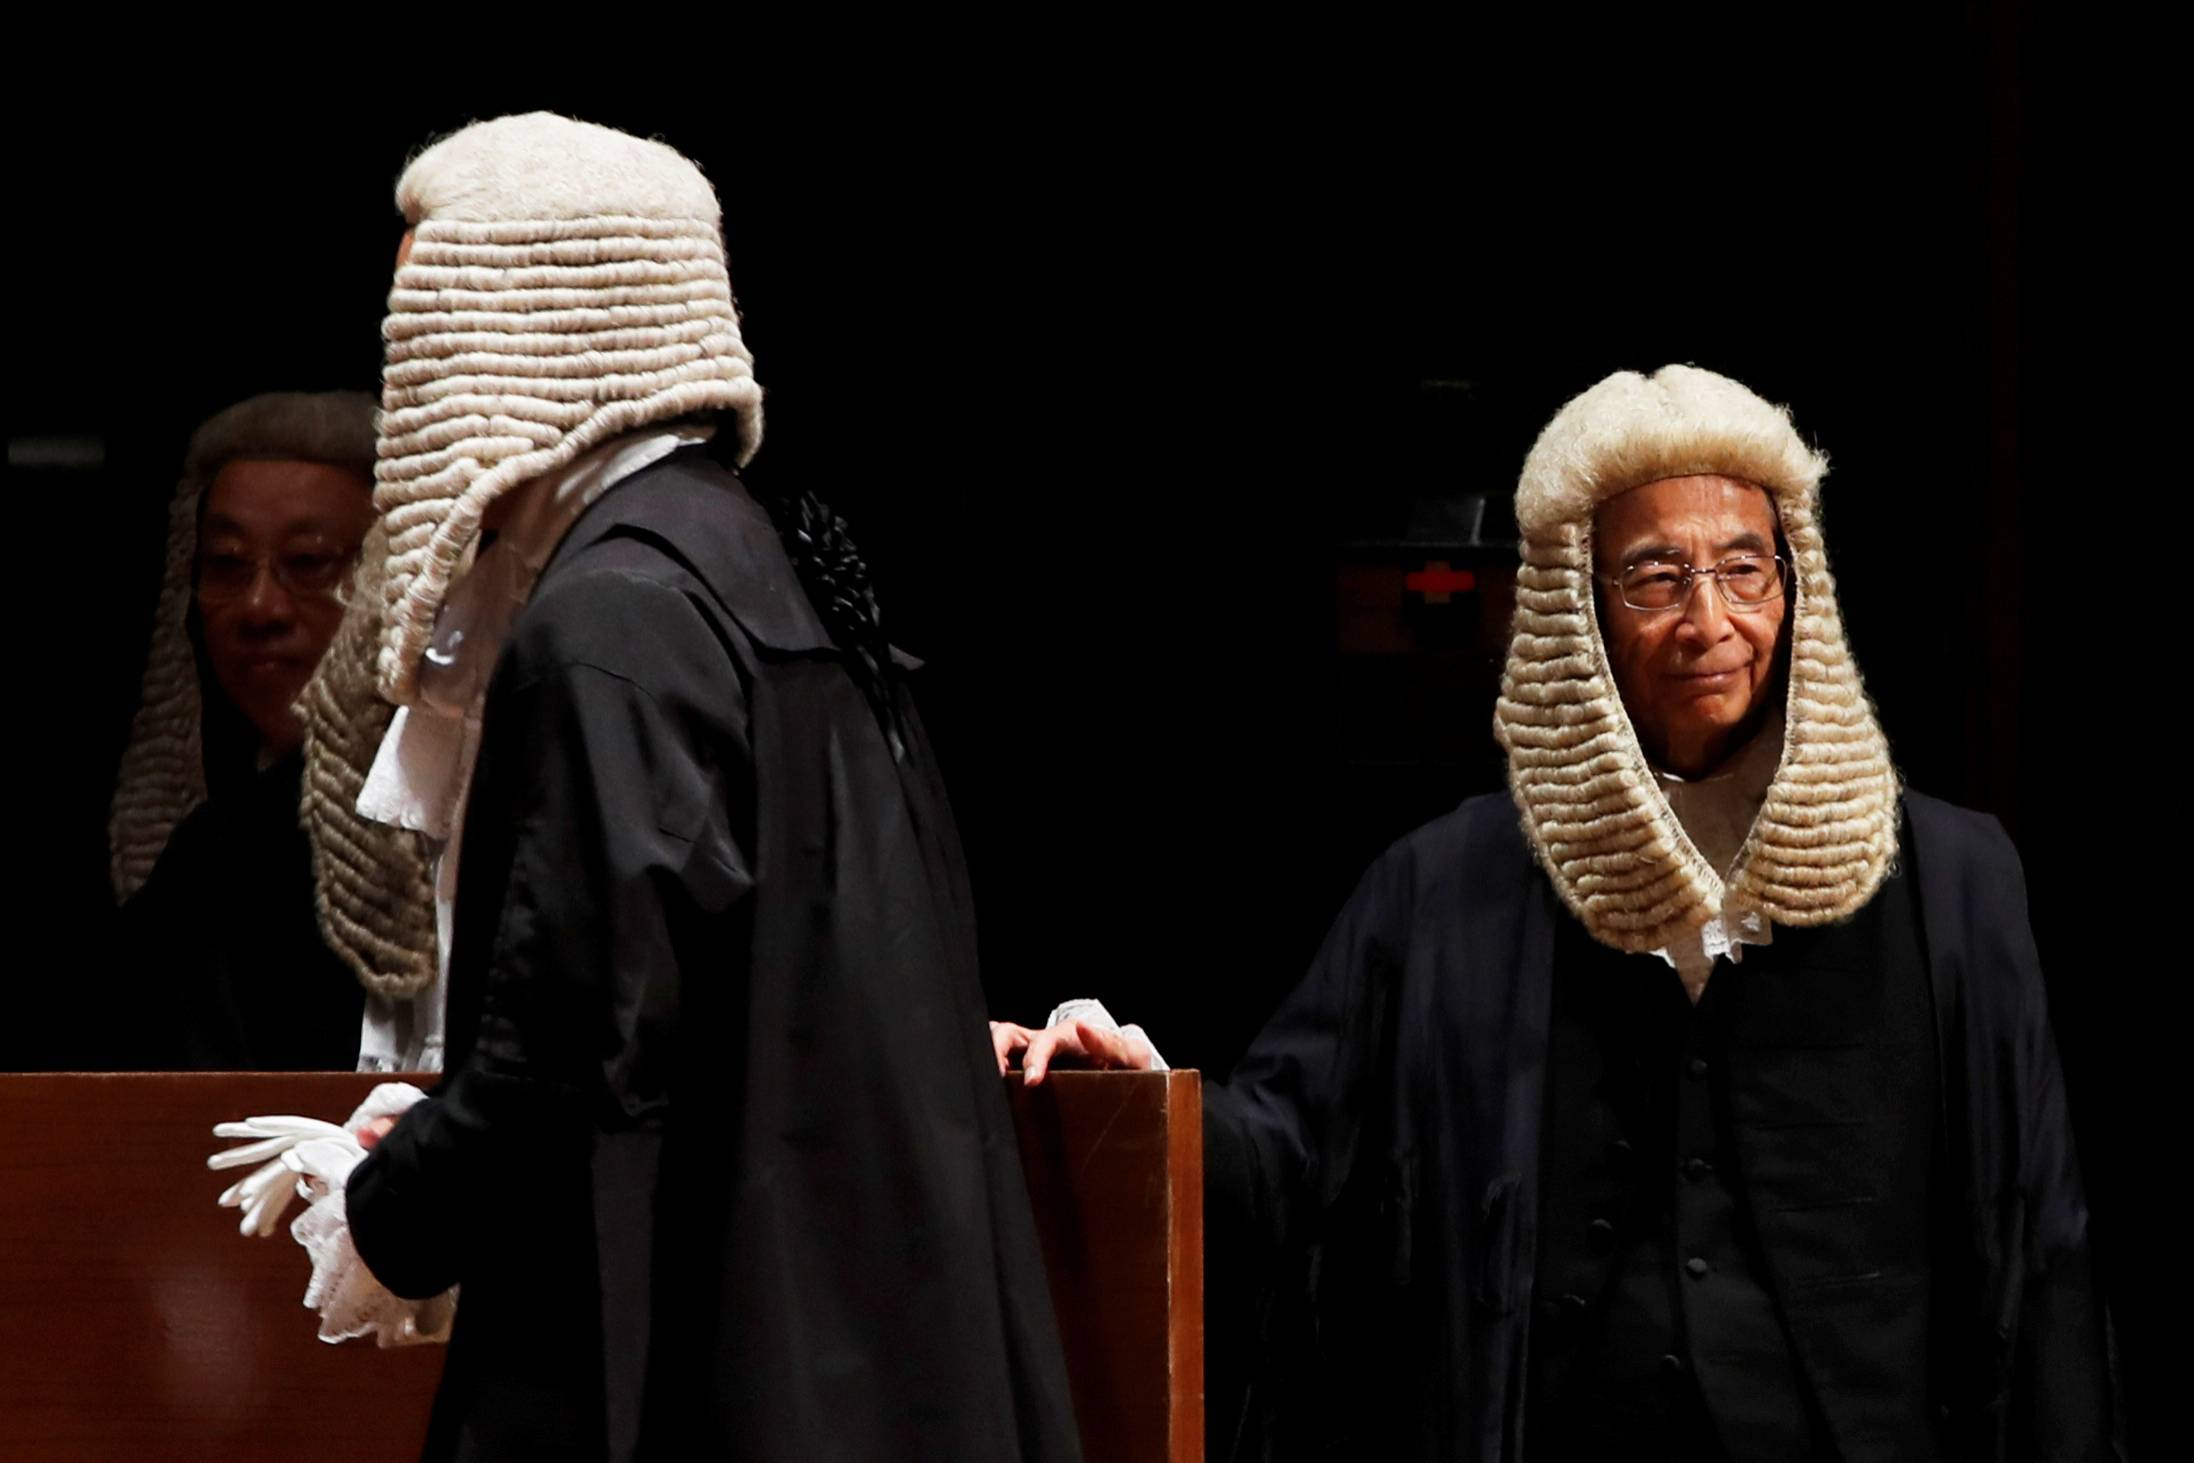 Hong Kong politician and barrister Martin Lee attends a ceremony to mark the beginning of the legal year in January 2019. | REUTERS